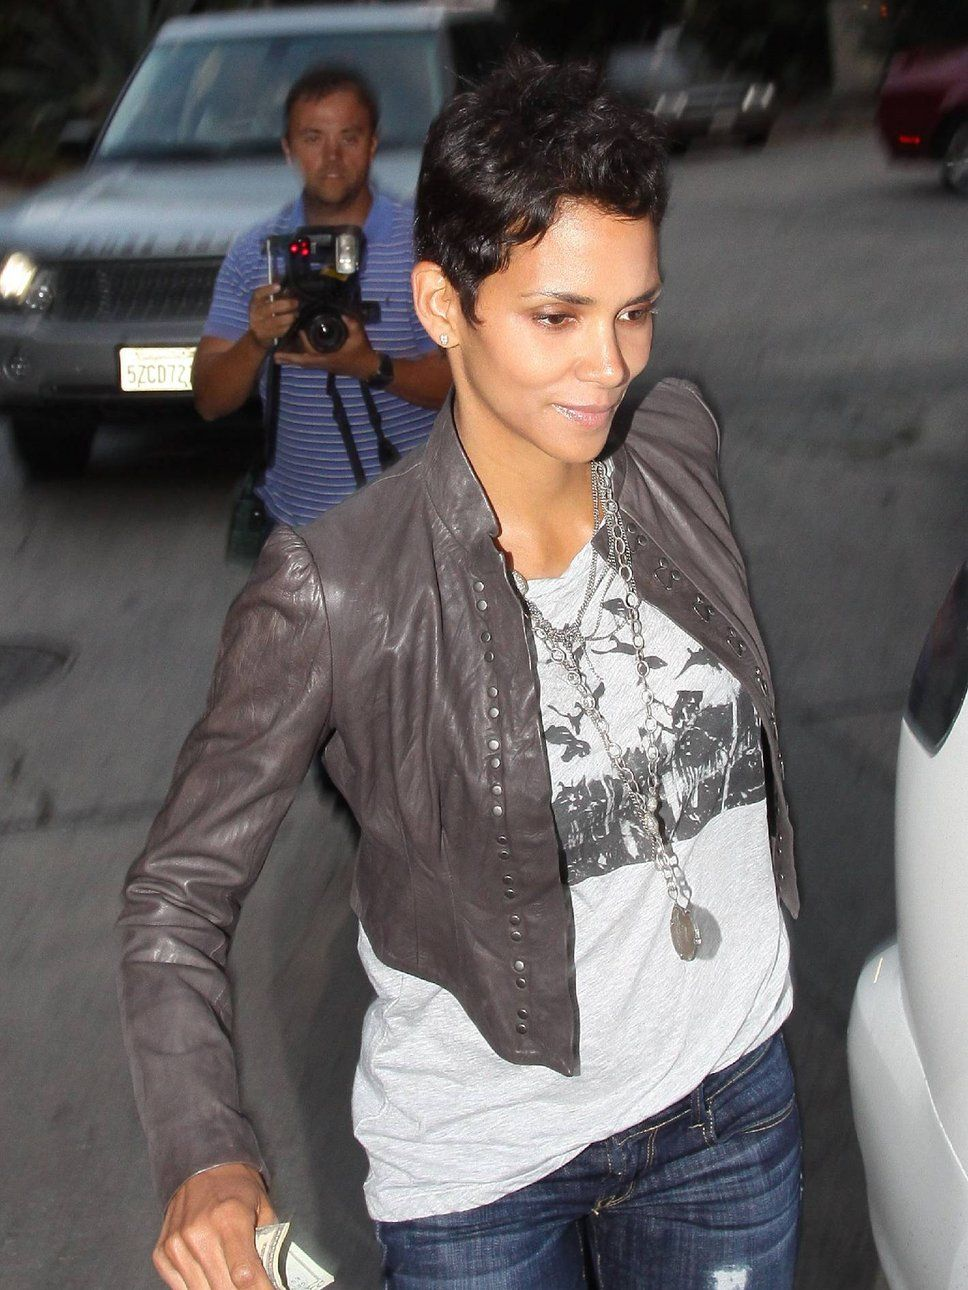 Google Image Result for http://photos.posh24.com/p/890739/z/halle_berry/halle_berry.jpg